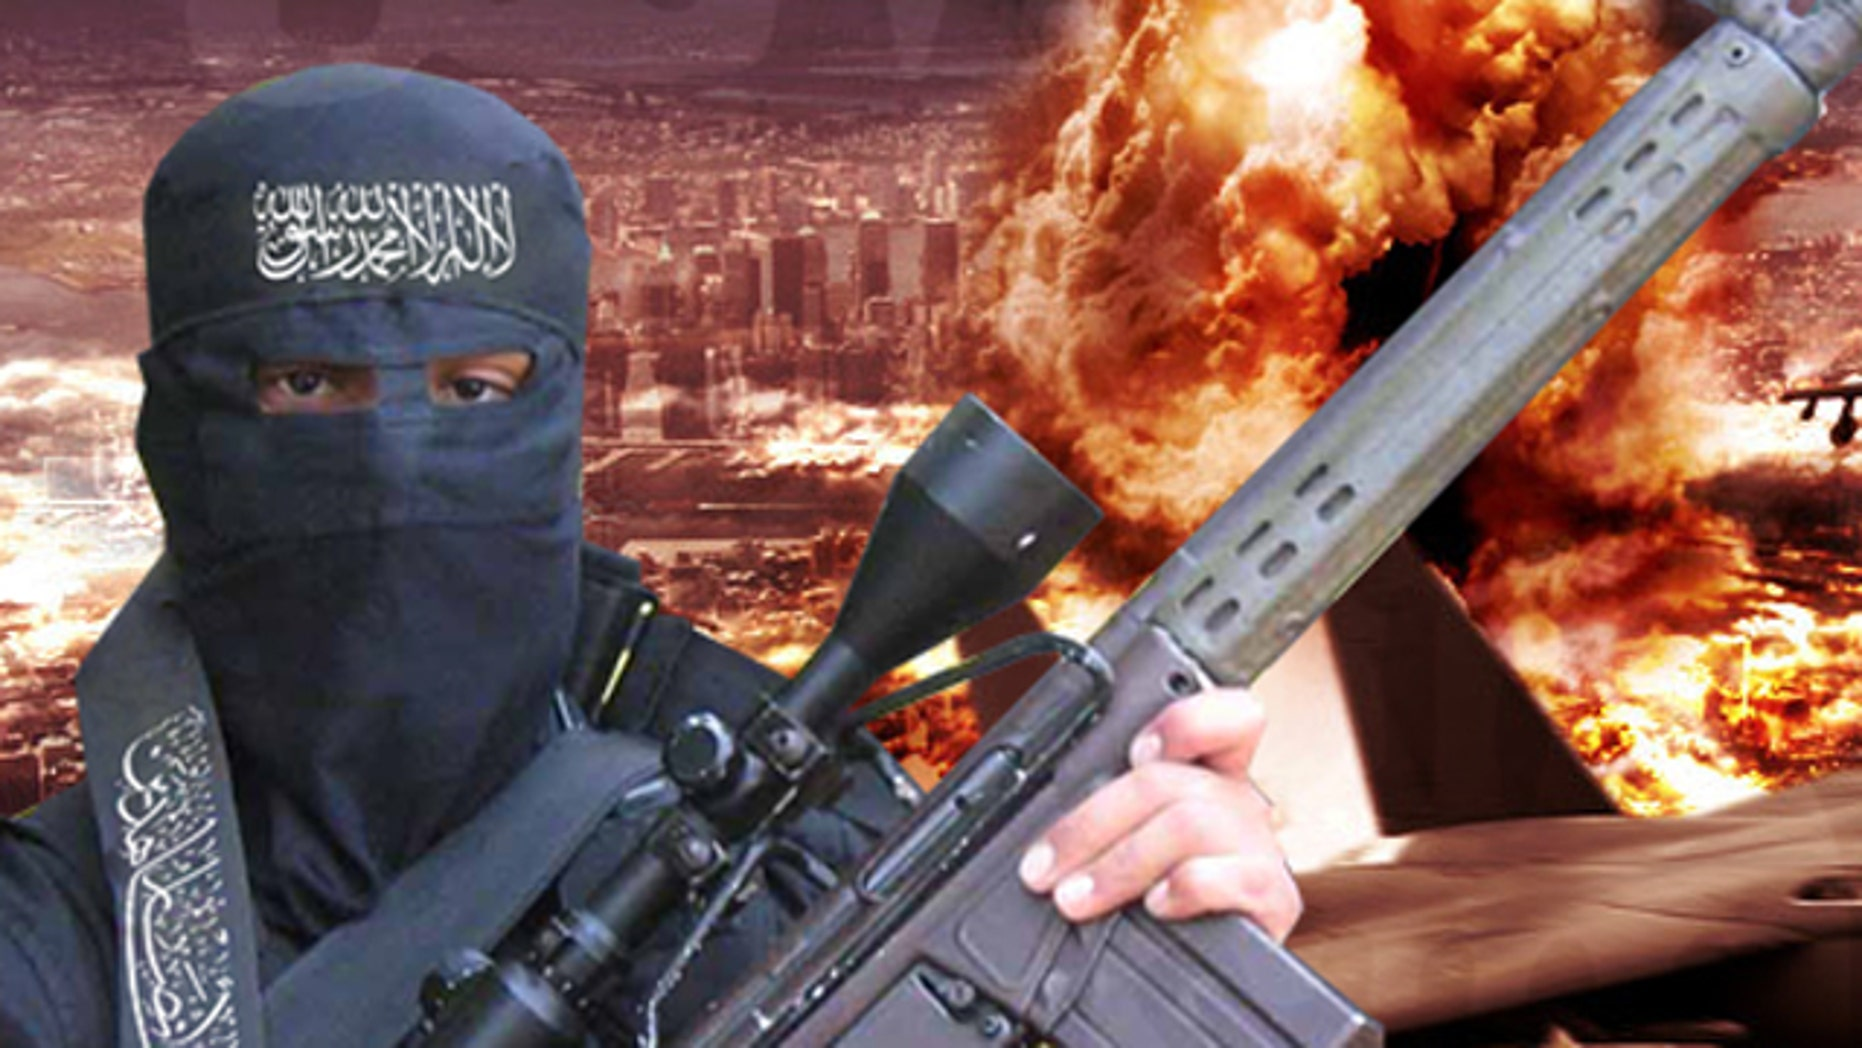 Shown here is an image from the Shumukh forum, an Al Qaeda-linked website.